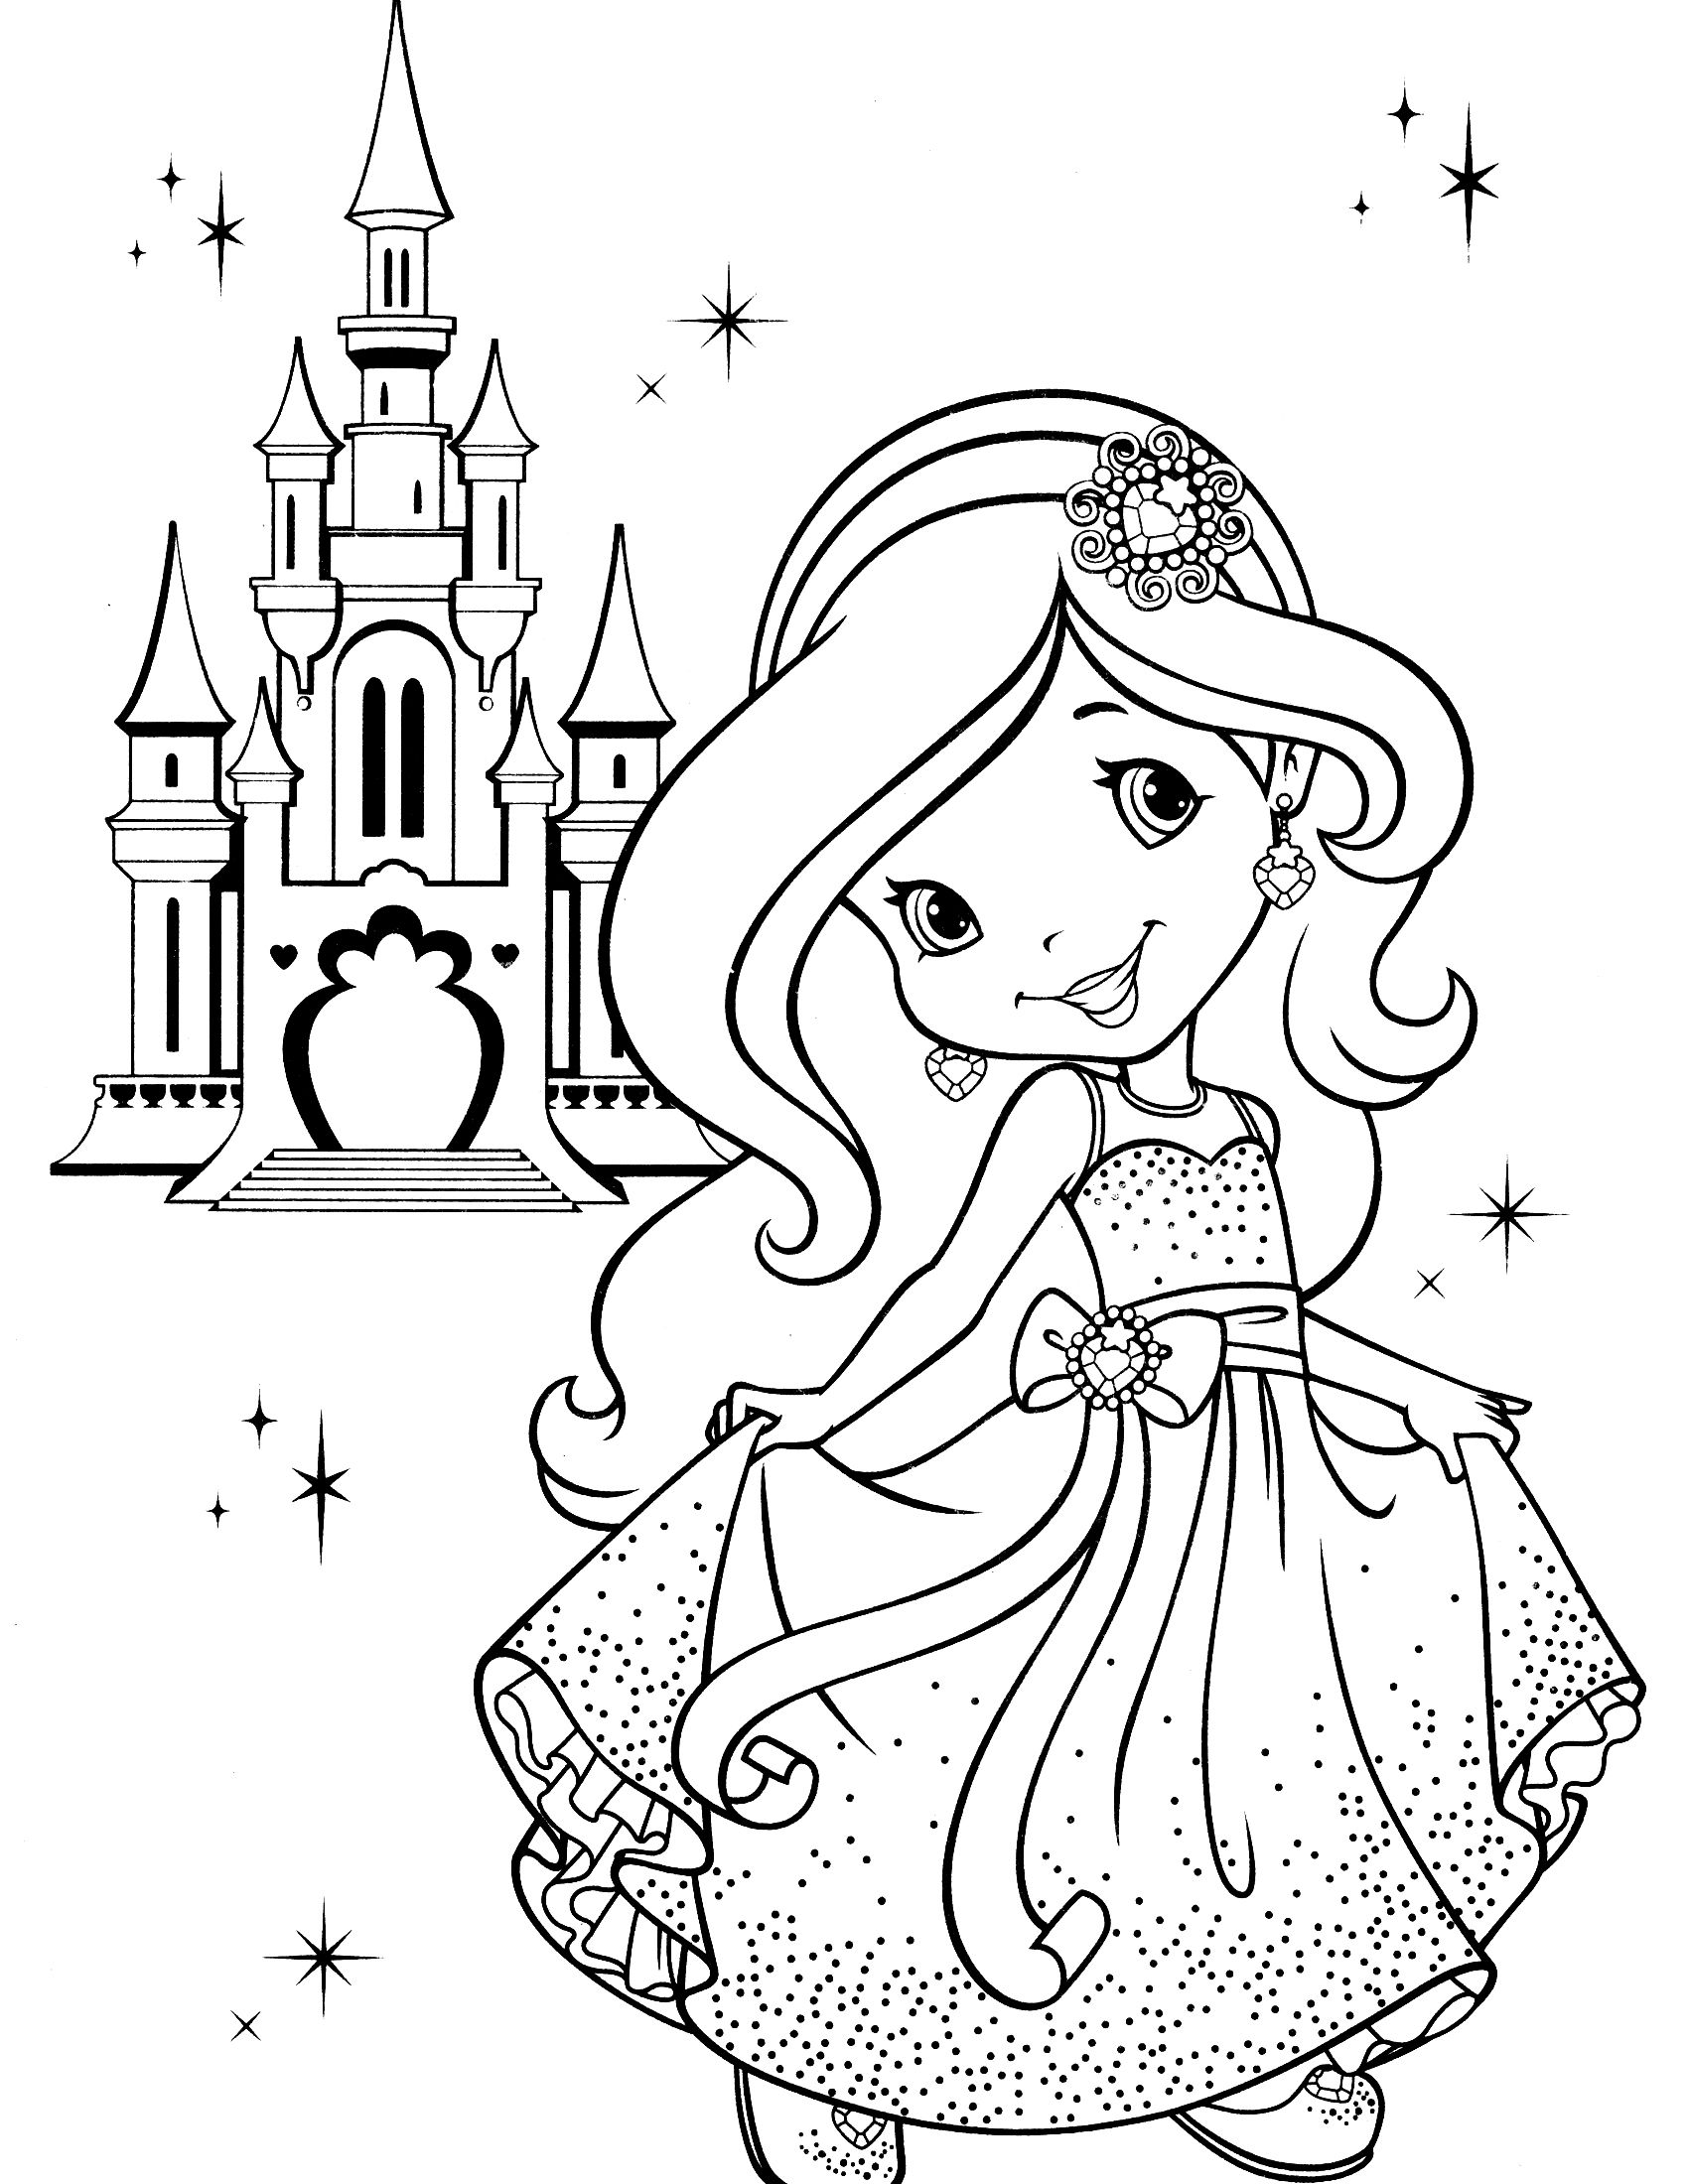 Disney princess birthday coloring pages - Free Colouring Pages Strawberry Shortcake Princess Coloring Pages Fresh At Minimalist Picture Coloring Page